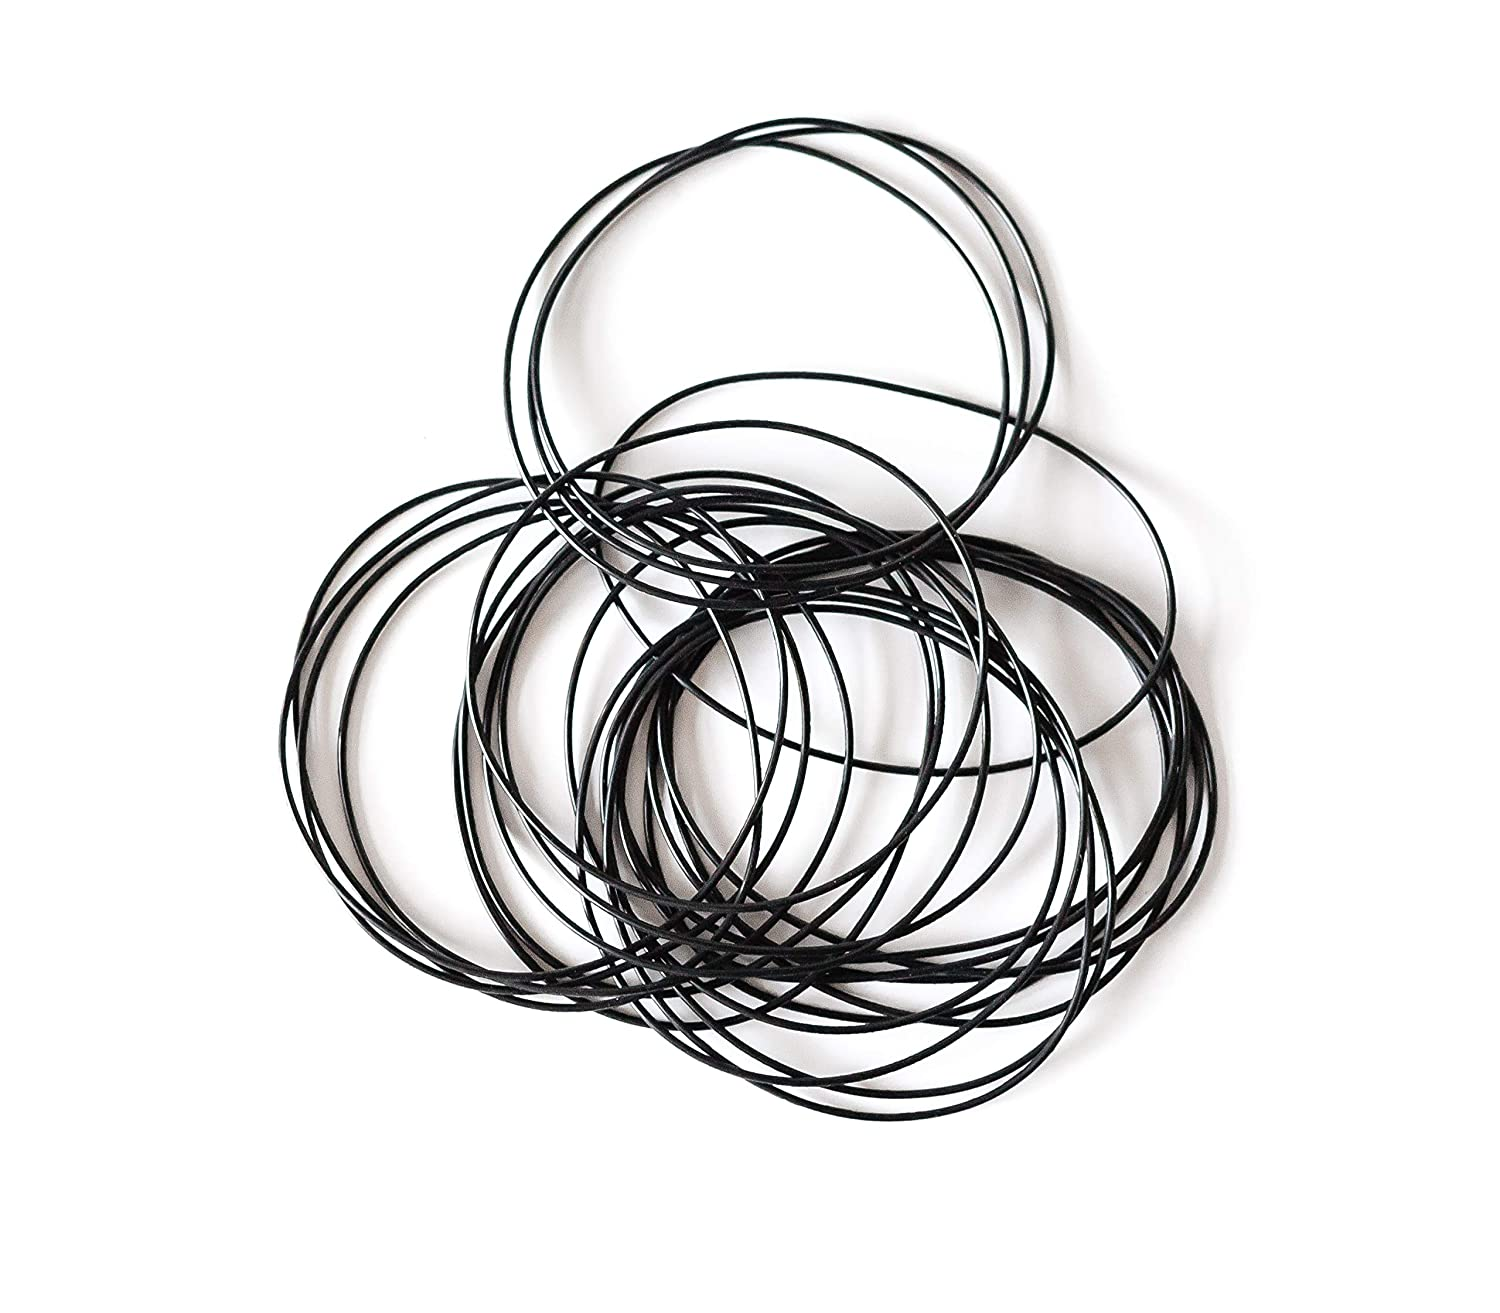 Pack of 25 3 1//2 CS 1//16 Buna-N 70A Durometer 3 1//2x3 5//8x1//16 Nitrile Rubber Oring EAI AS568 ORing Seal #043 ID